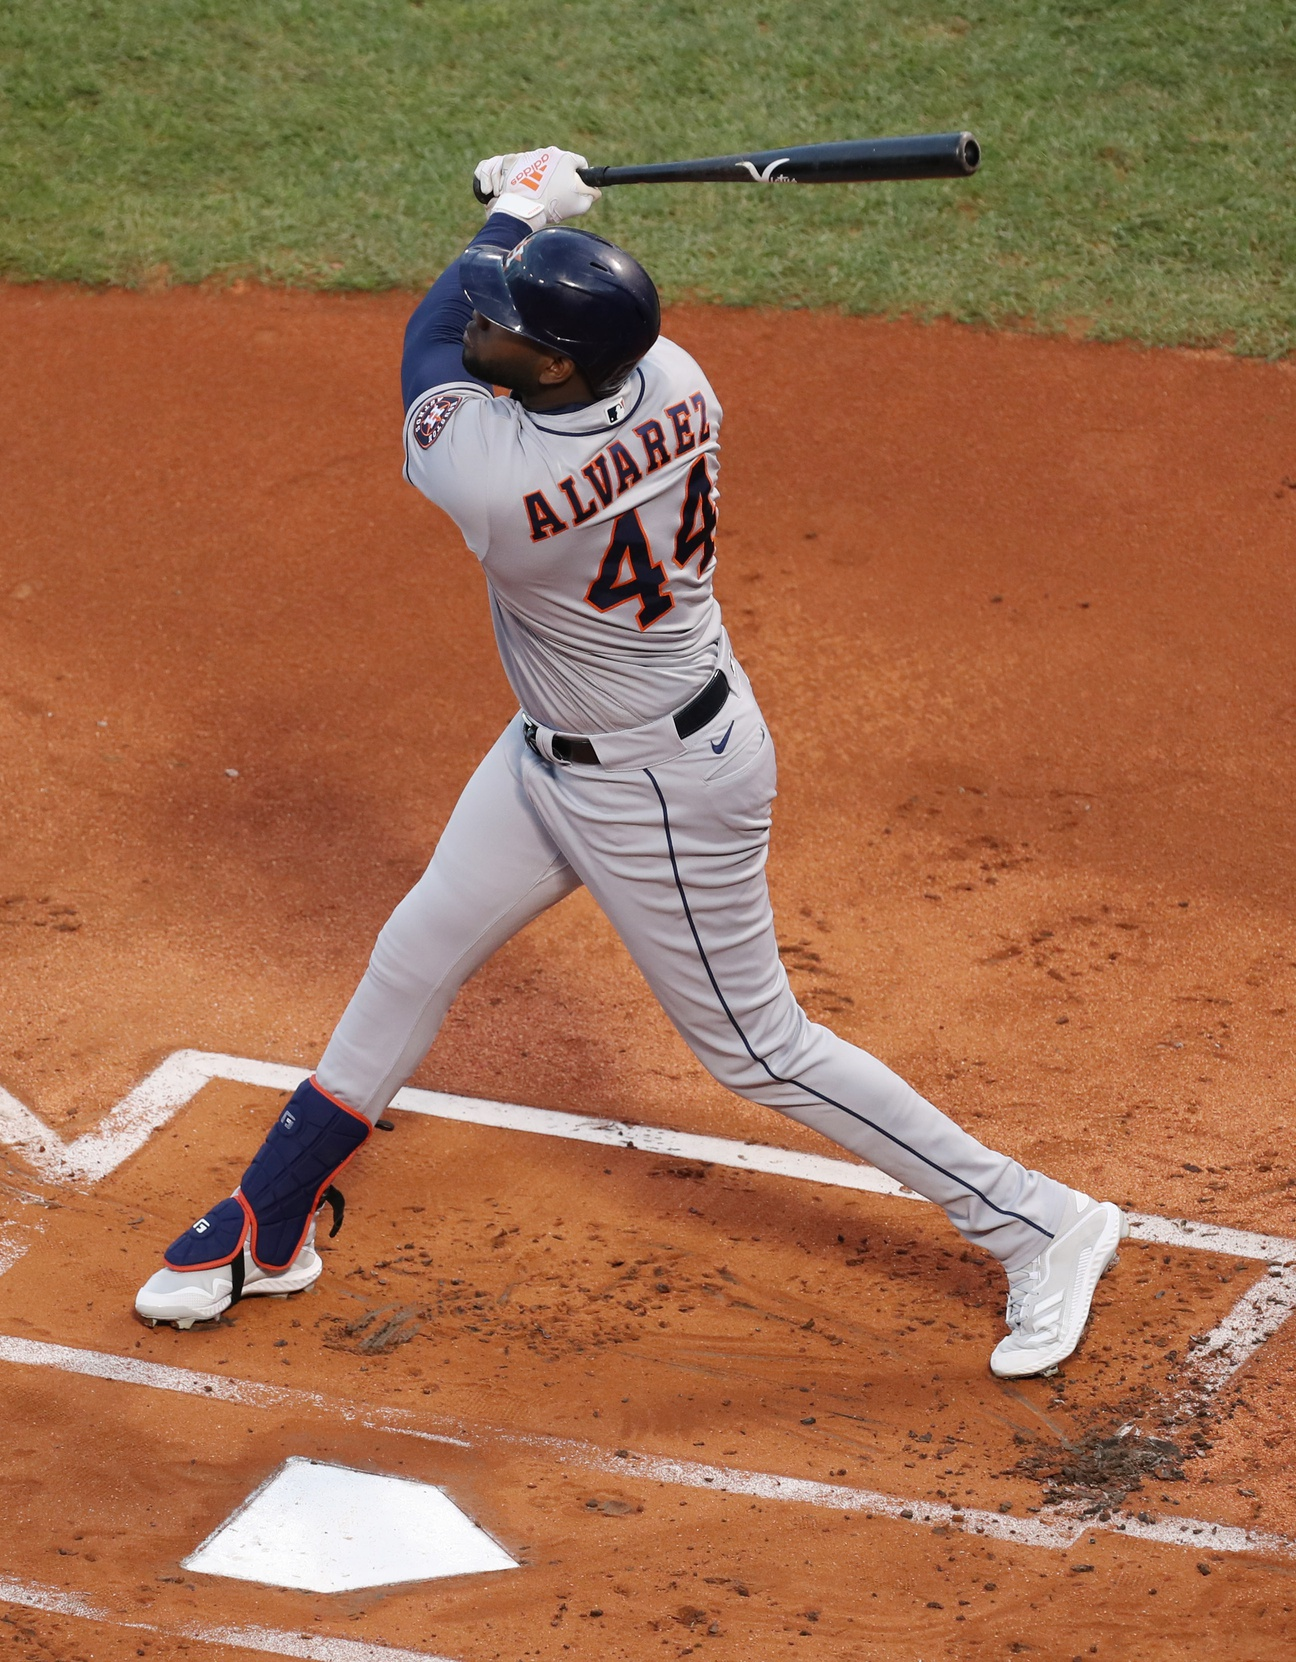 Astros beat Red Sox to take 3-2 ALCS lead